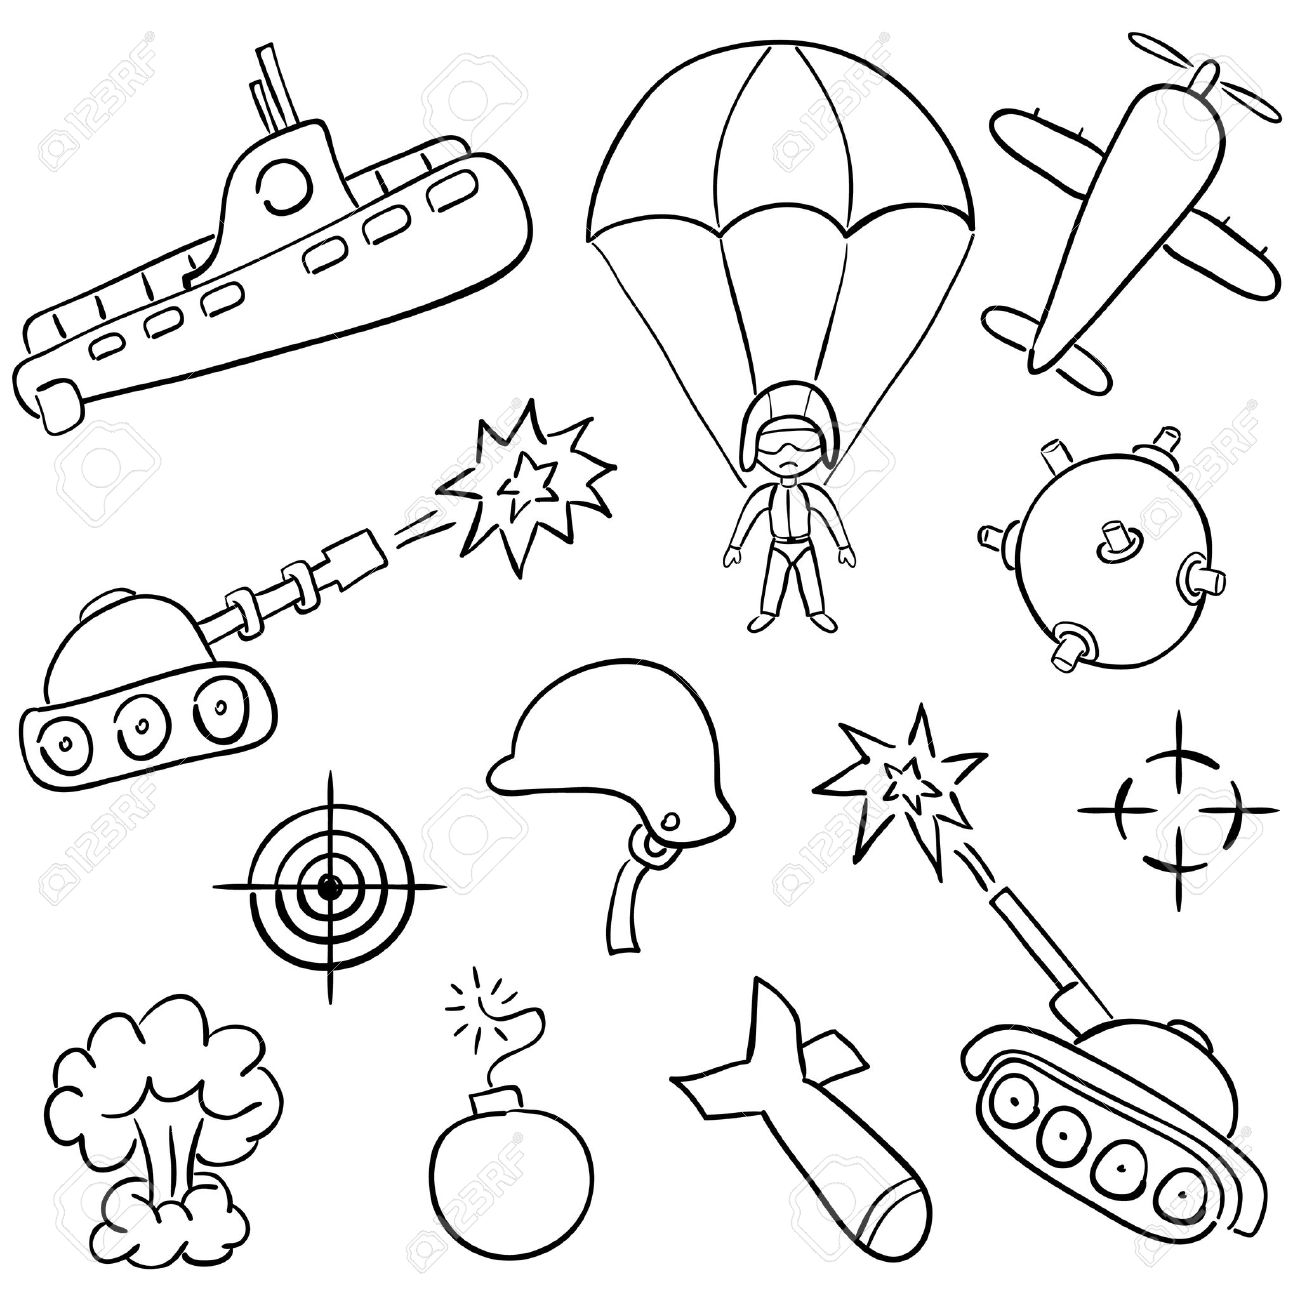 1300x1300 Hand Drawn Doodles On The War Themes Royalty Free Cliparts